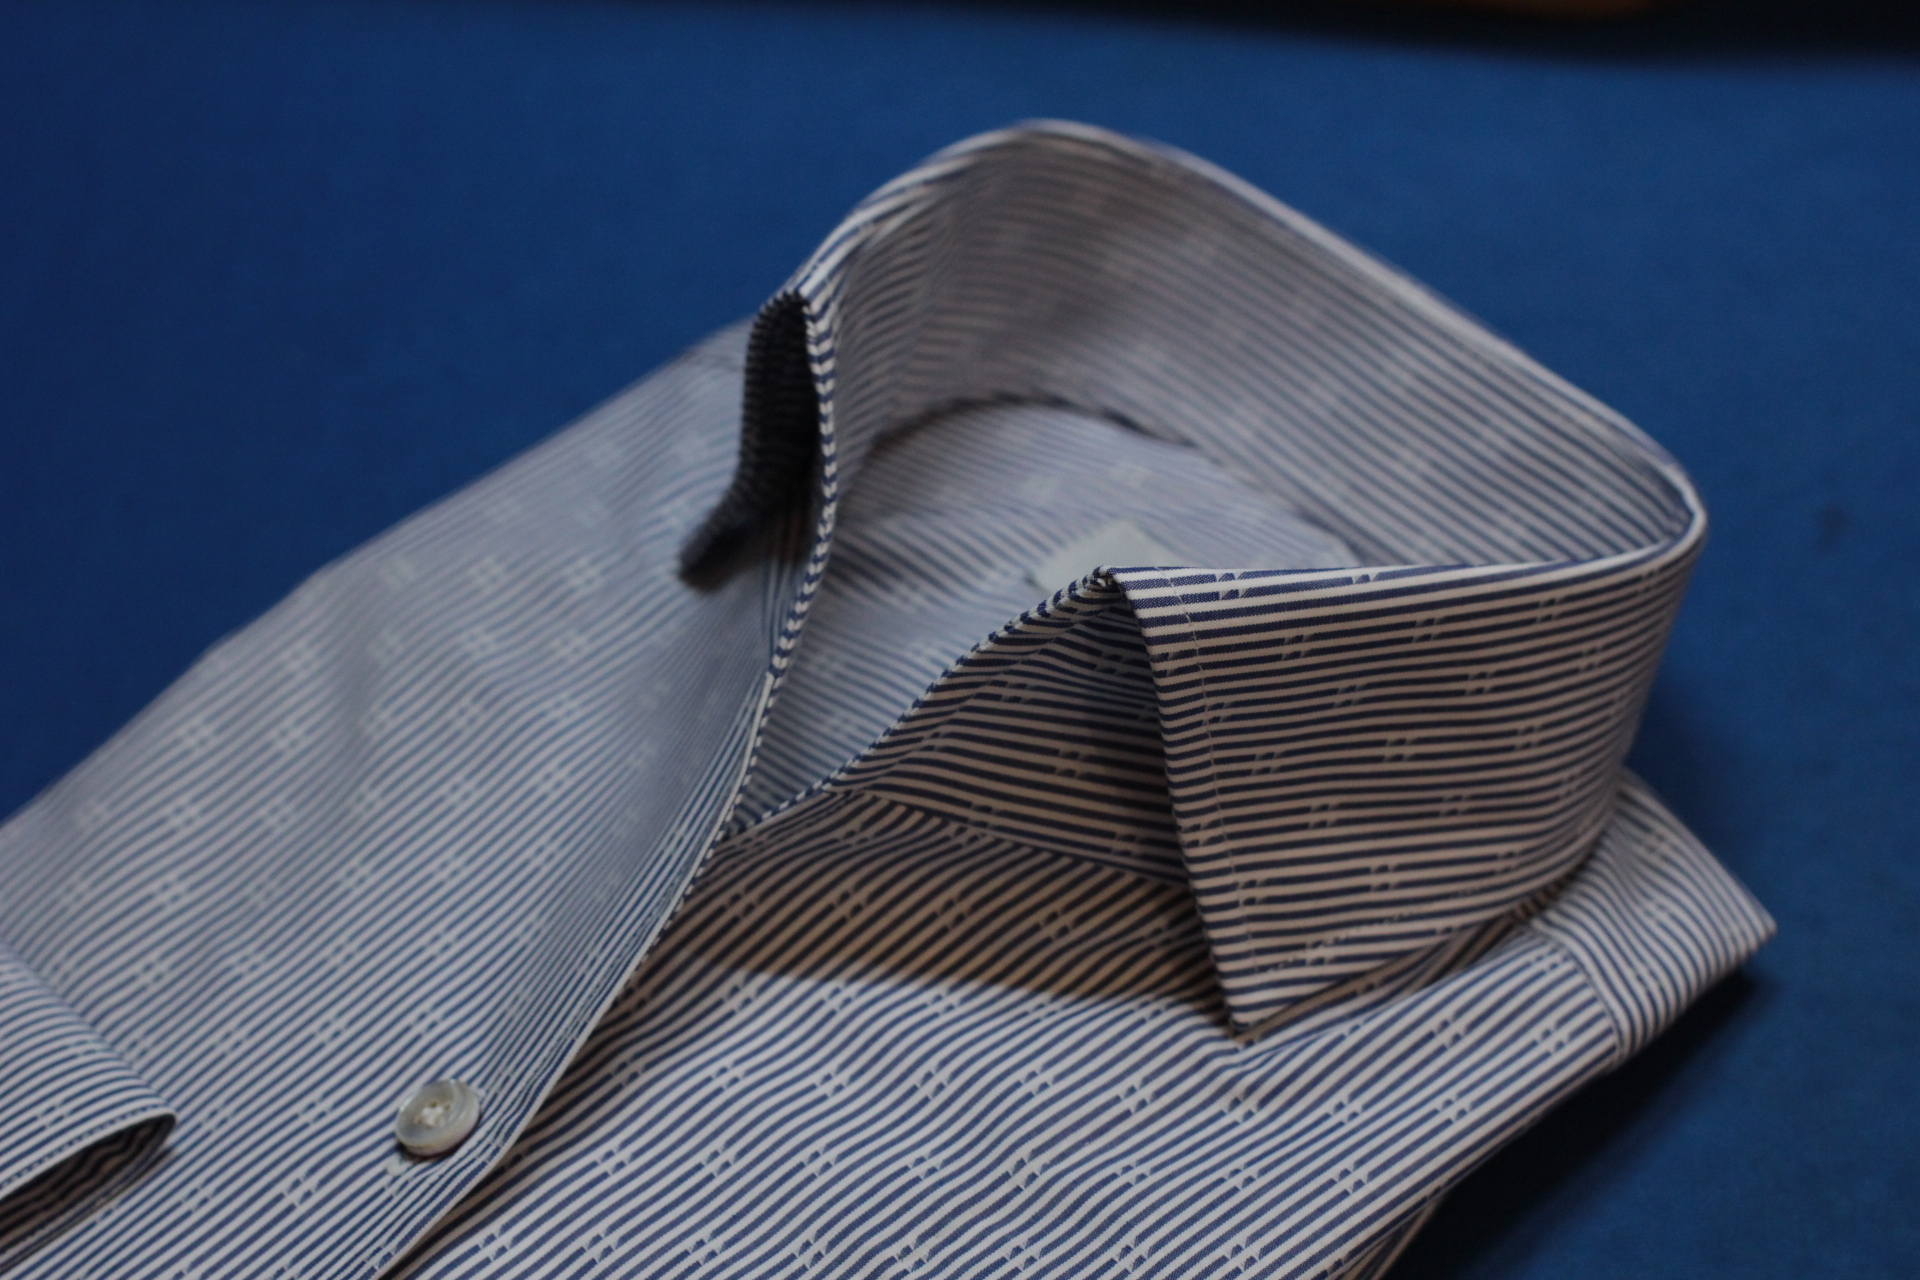 Blue Ship Stripe One Piece Collar Made Suits Shirts | Made to measure Shirts.JPG